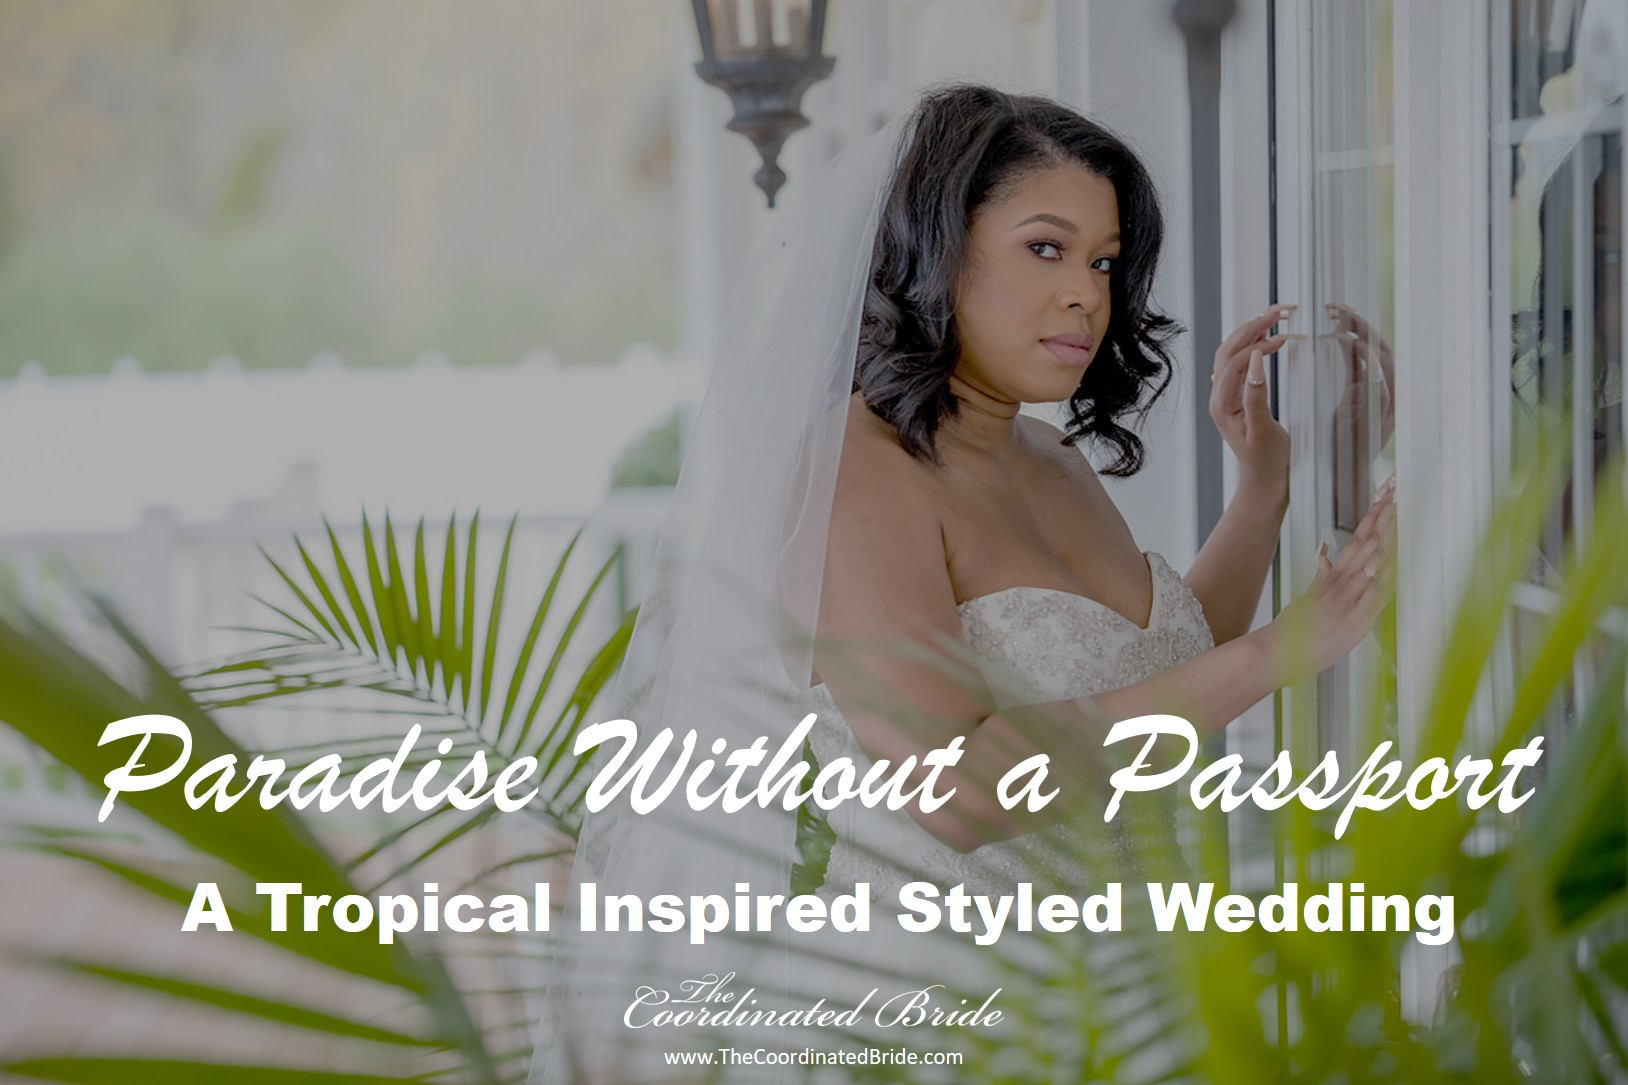 Paradise Without a Passport, A Tropical Inspired Styled Wedding